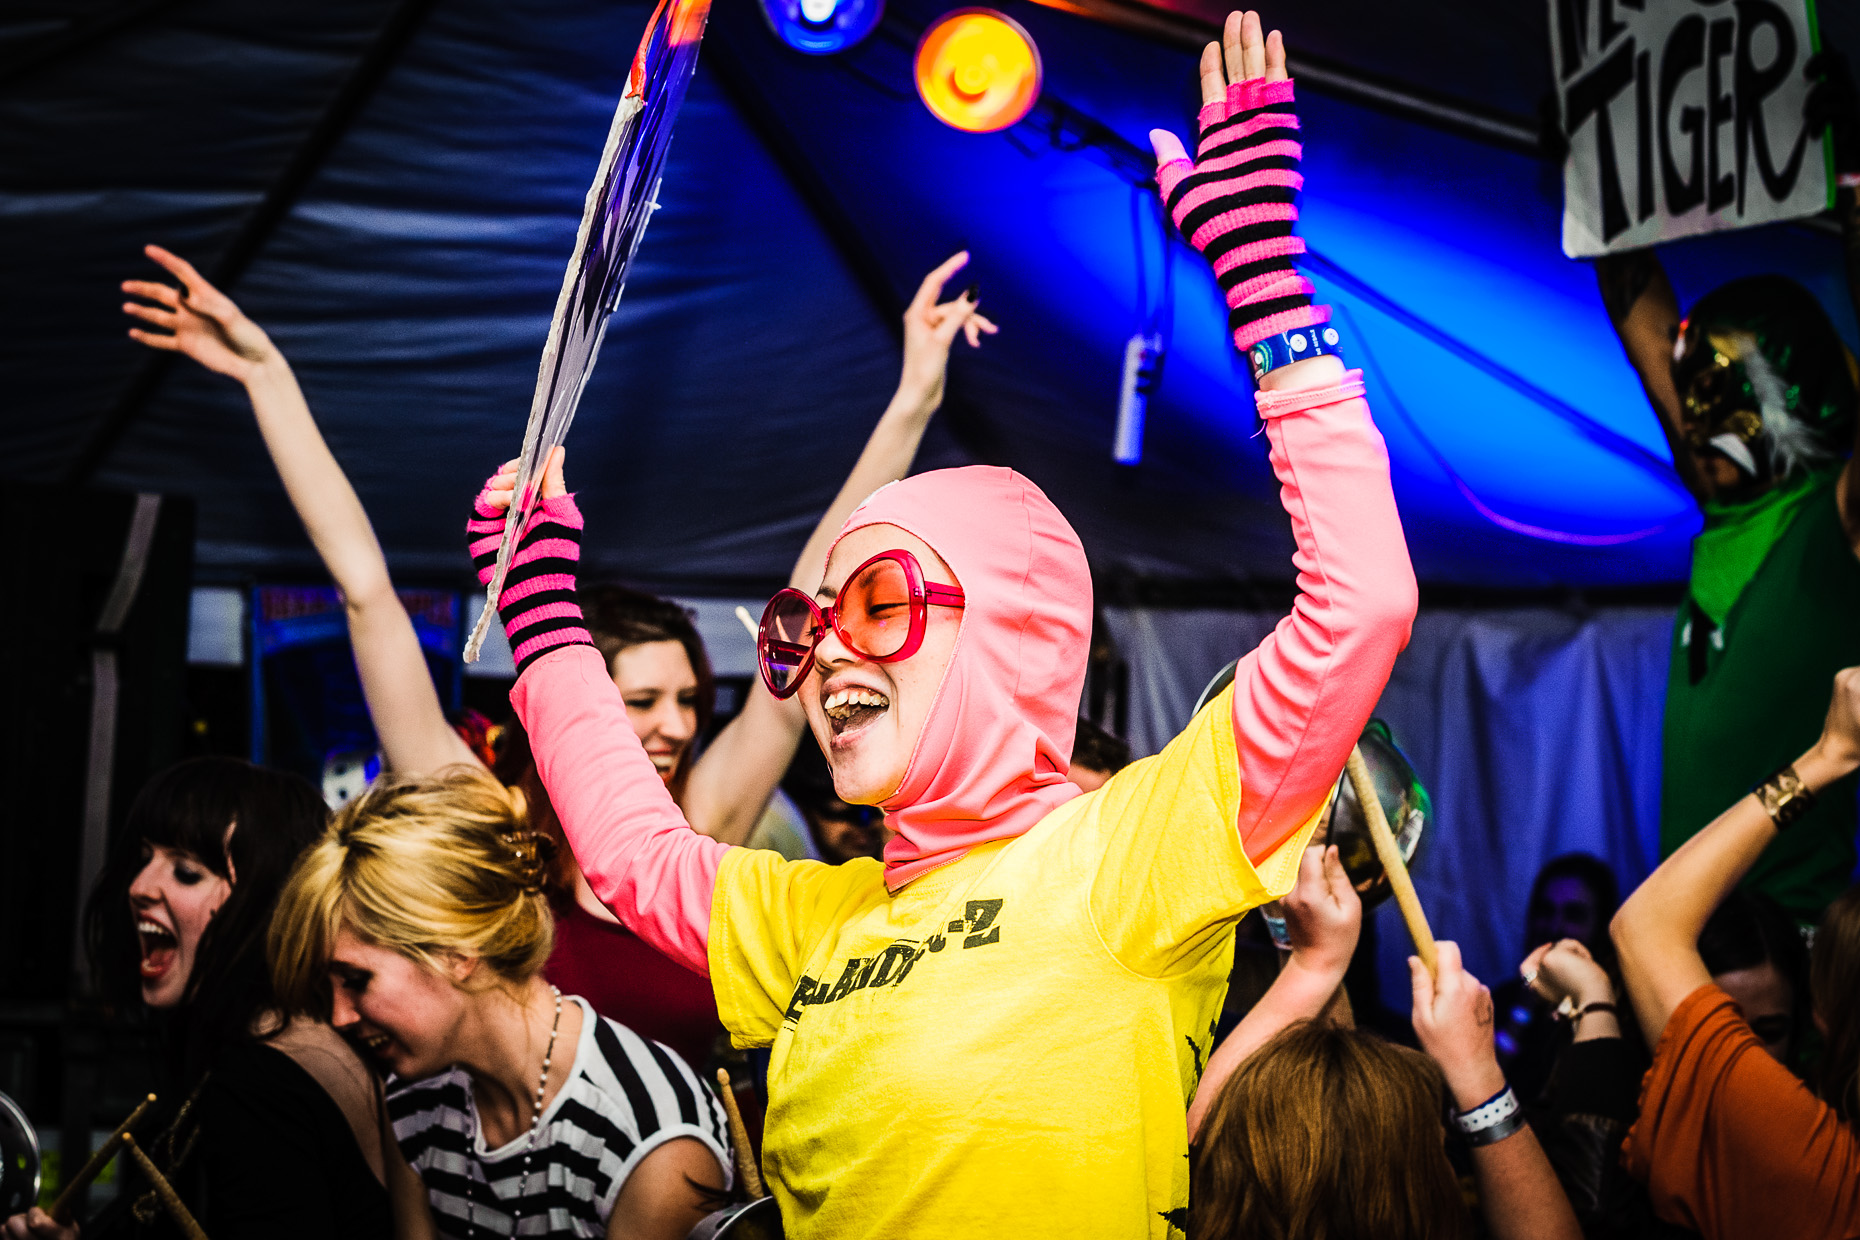 SXSW-Peelander-Z-Austin-Music-Photographer-Commercial-Texas.jpg